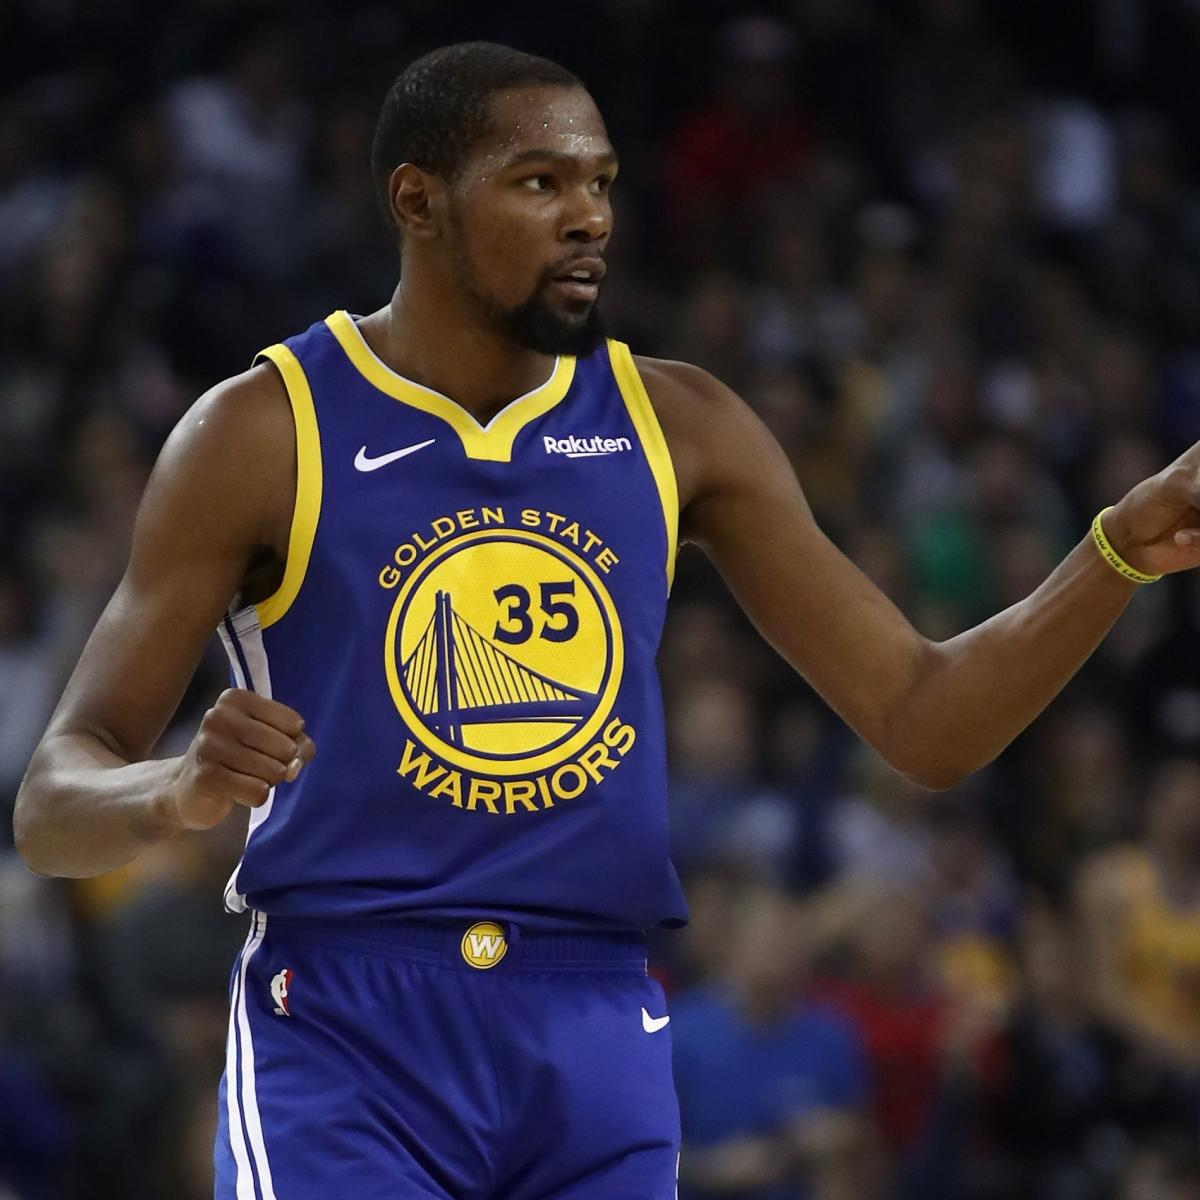 Kevin Durant's Brother Posts Cryptic Messages After Draymond Green Altercation